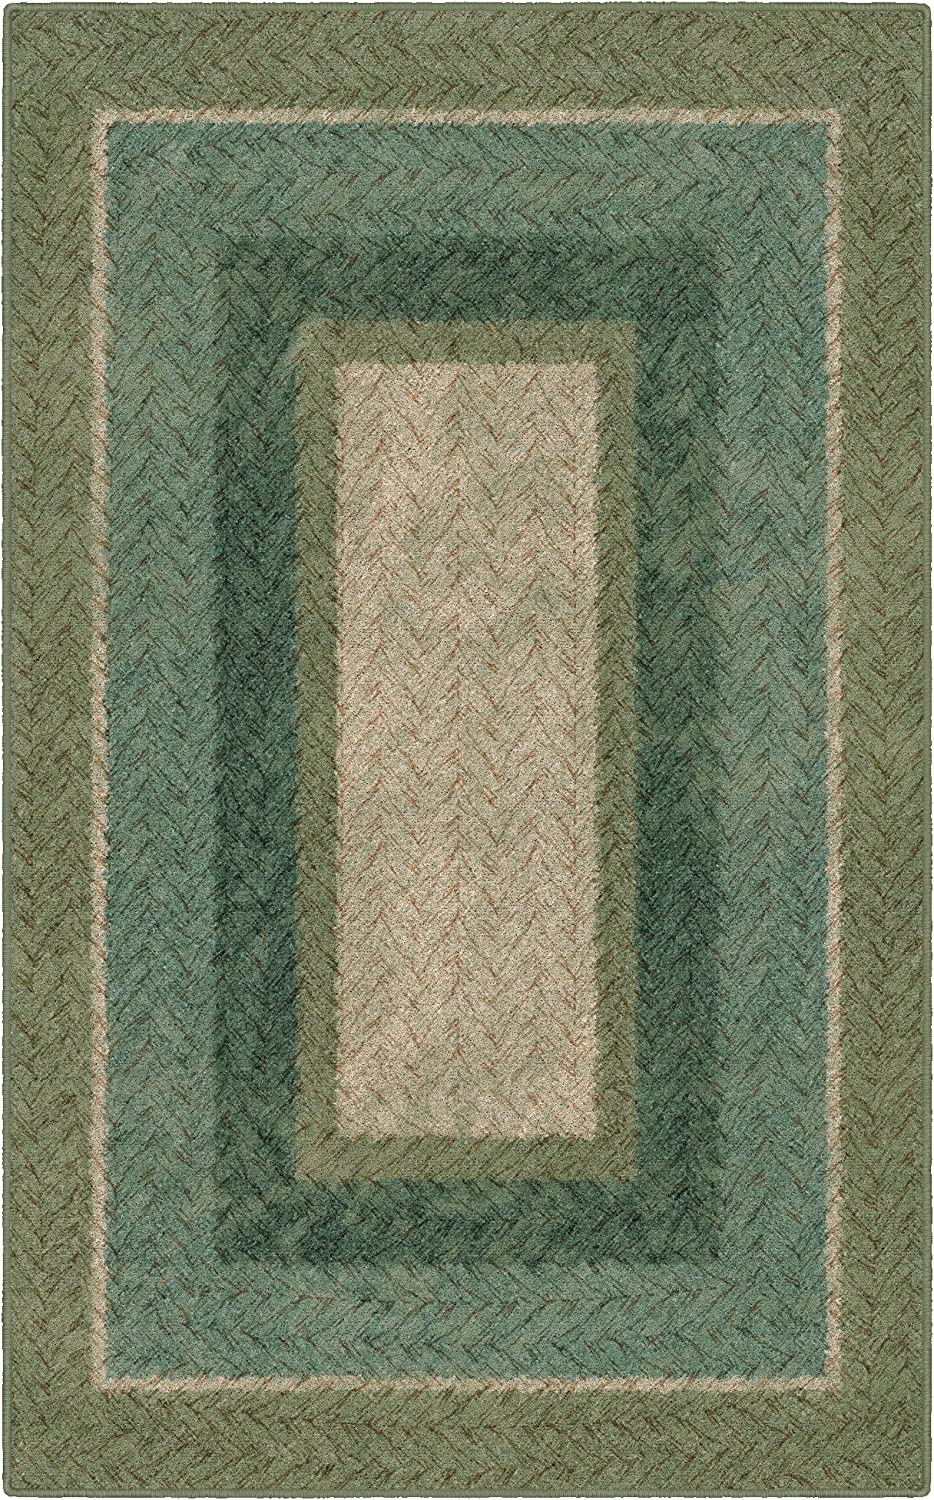 "Brumlow Mills Muted Braided Print Home Indoor Area Rug for Living Room Decor, Dining Room, Kitchen Rug, or Bedroom, 2'6"" x 3'10"", Green"